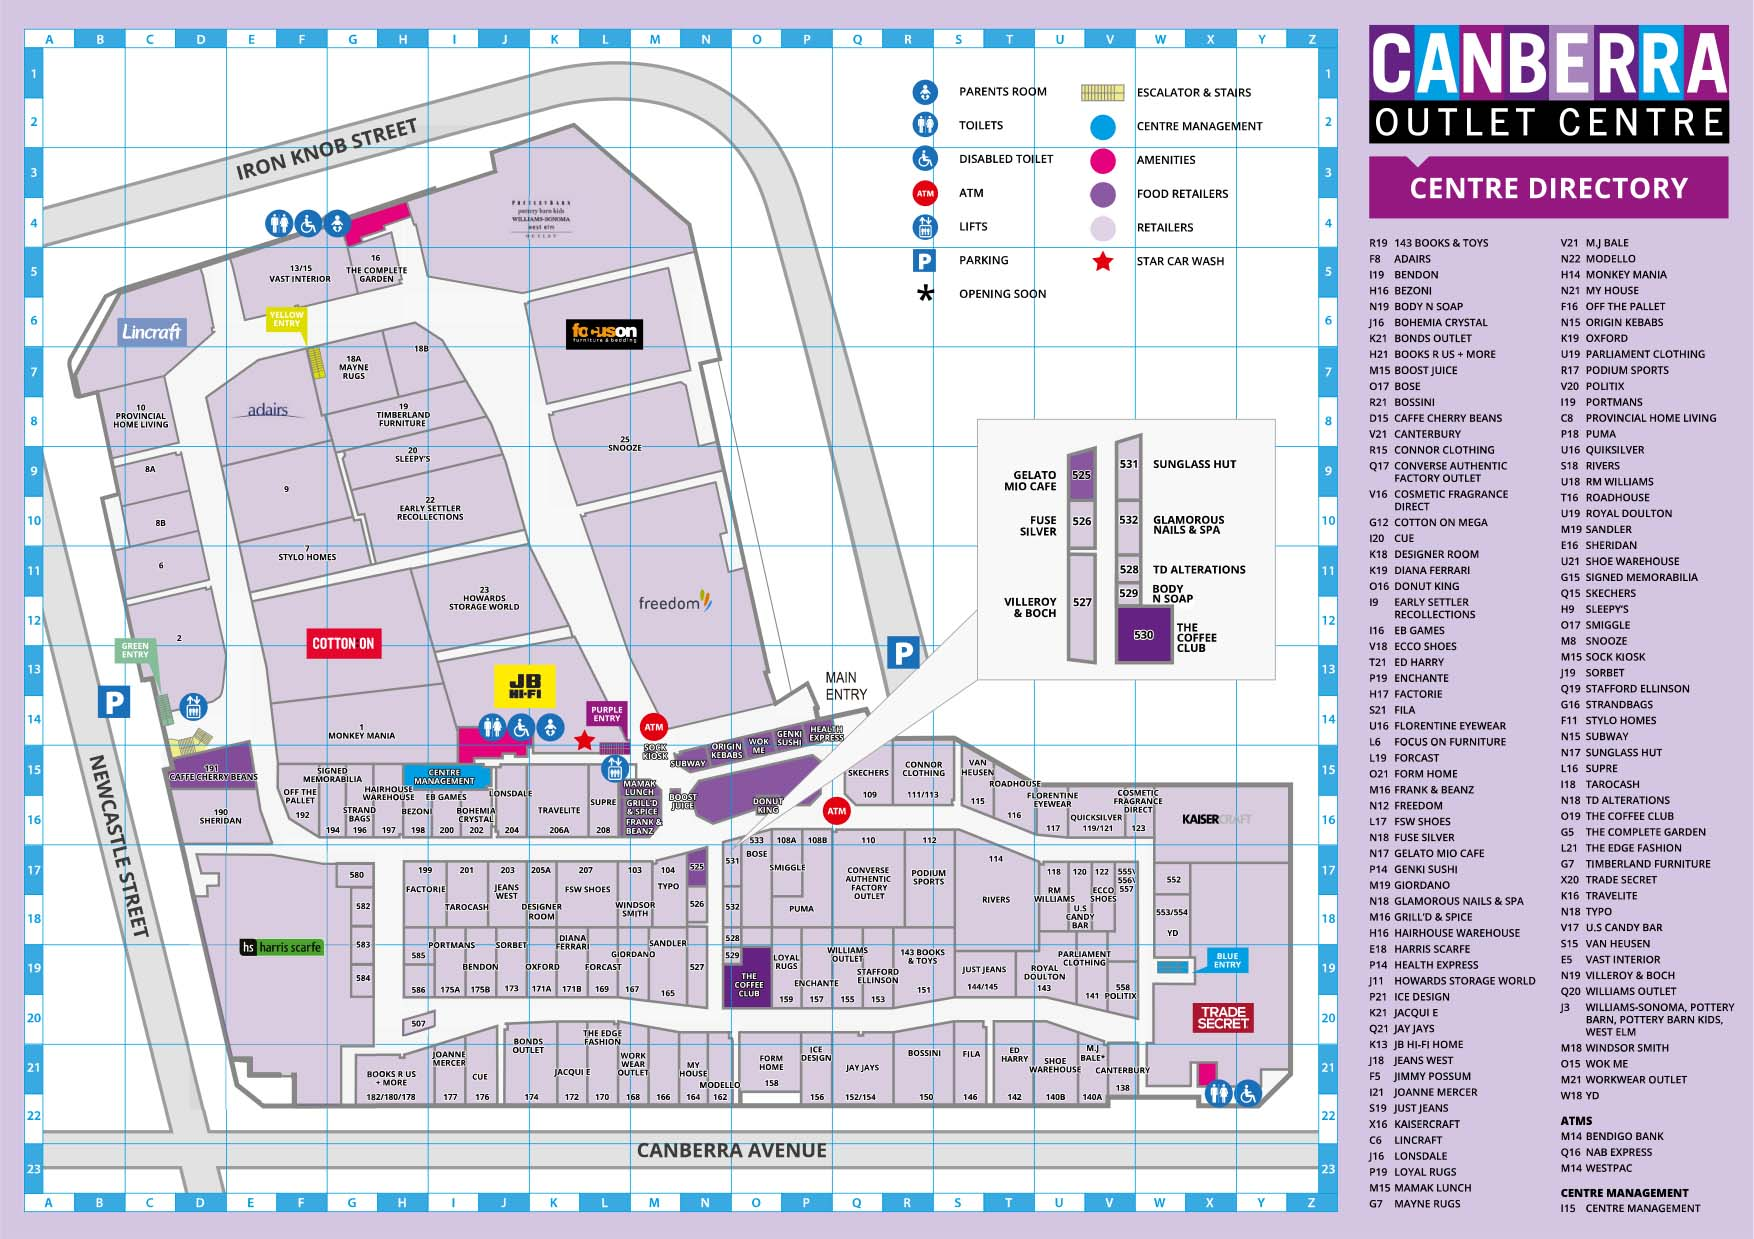 Canberra Centre Map Canberra Centre Map | compressportnederland Canberra Centre Map